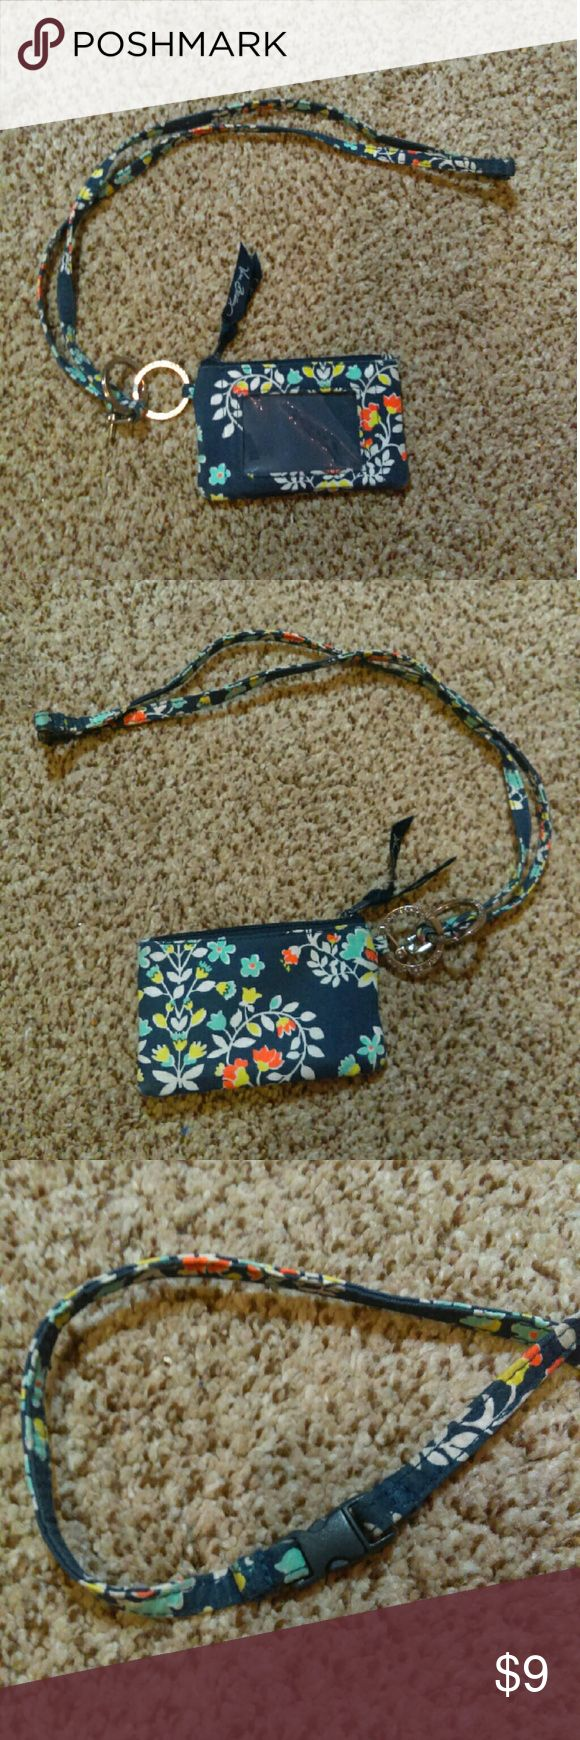 Vera Bradley Id wallet and lanyard Vera Bradley id wallet and lanyard in Chandelier Floral. Lanyard has a safety clip to avoid accidental choking. Lanyard and id wallet both have attached key rings. Beautiful pattern and in great condition except for damaged extra clasp on lanyard shown in last picture. Vera Bradley Bags Wallets